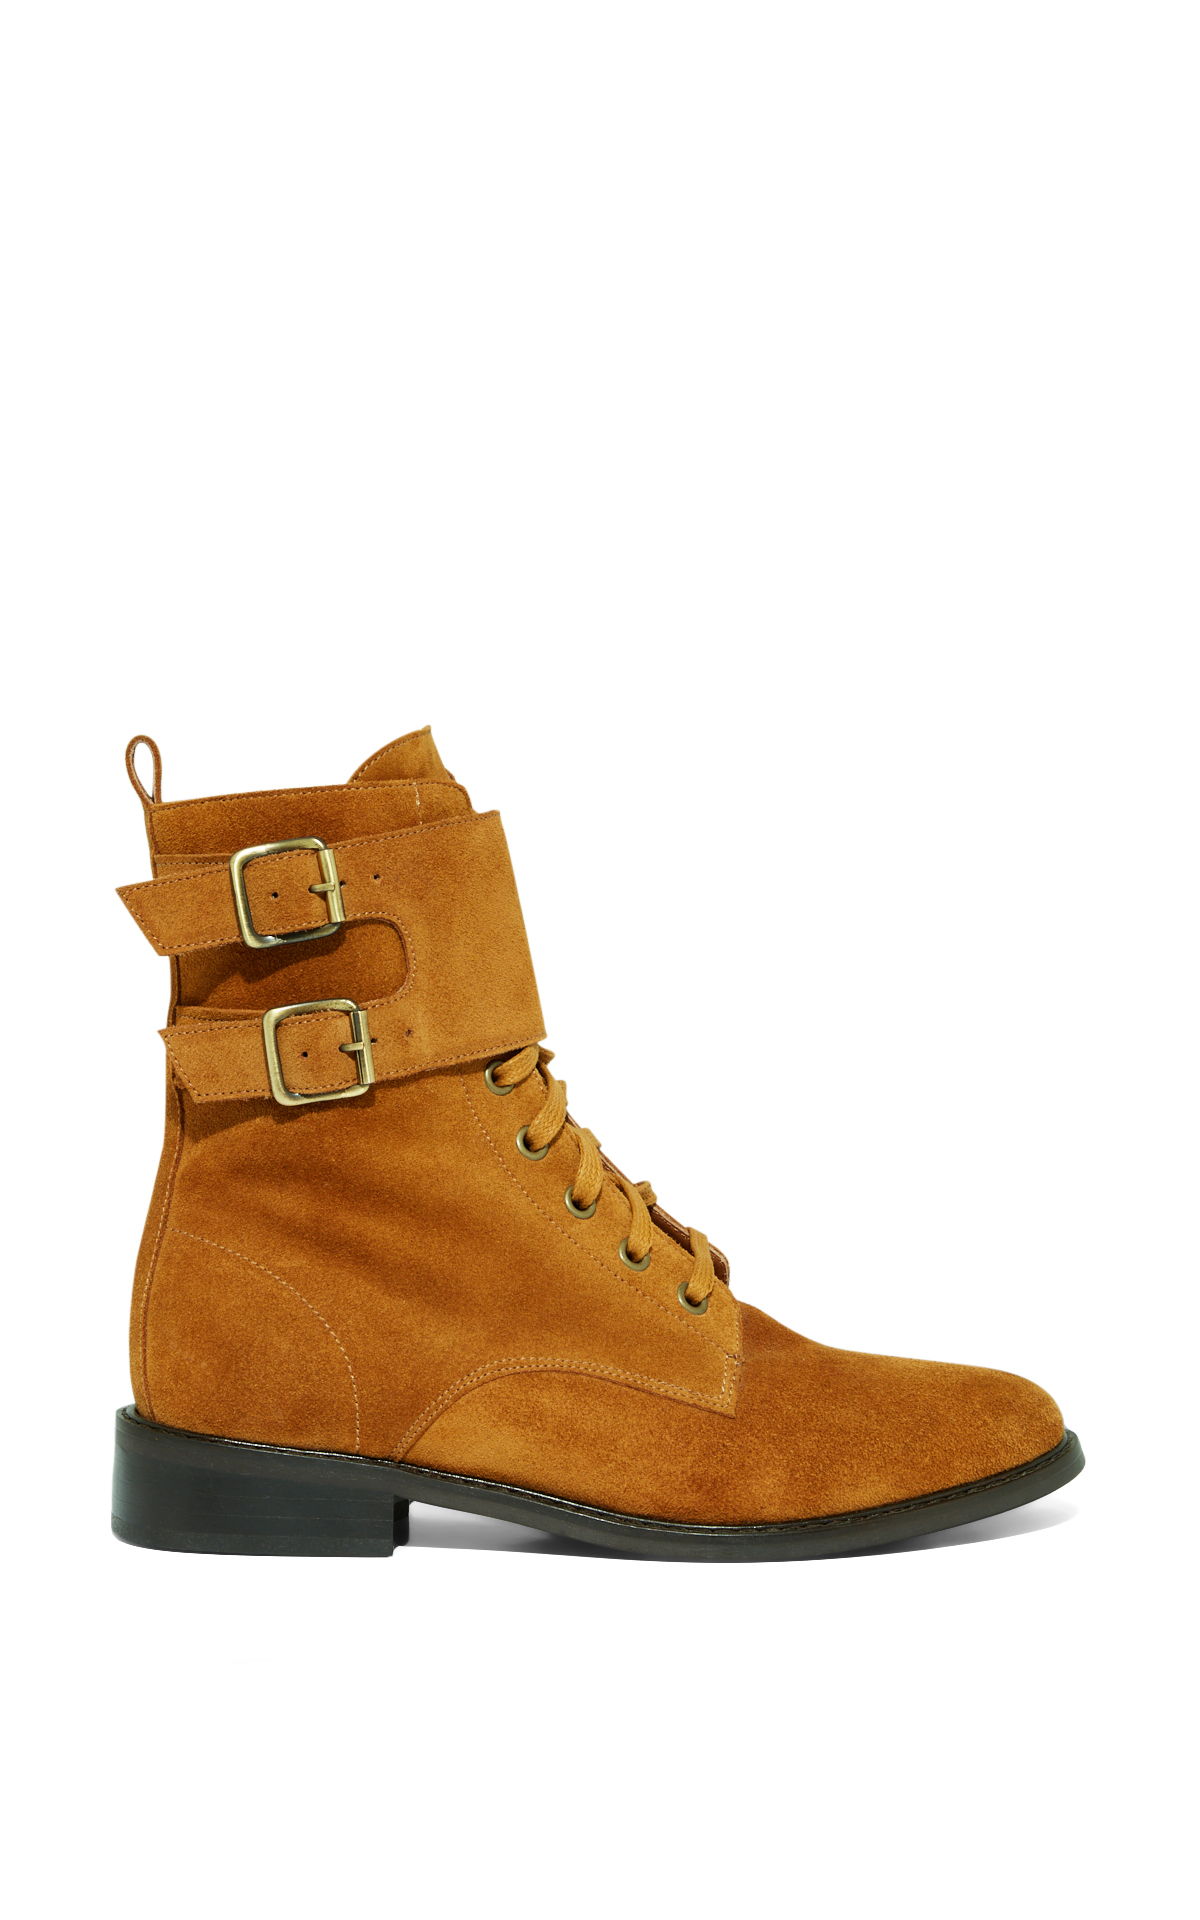 Ba&sh Bottines Scomo couleur Cognac la vallée village